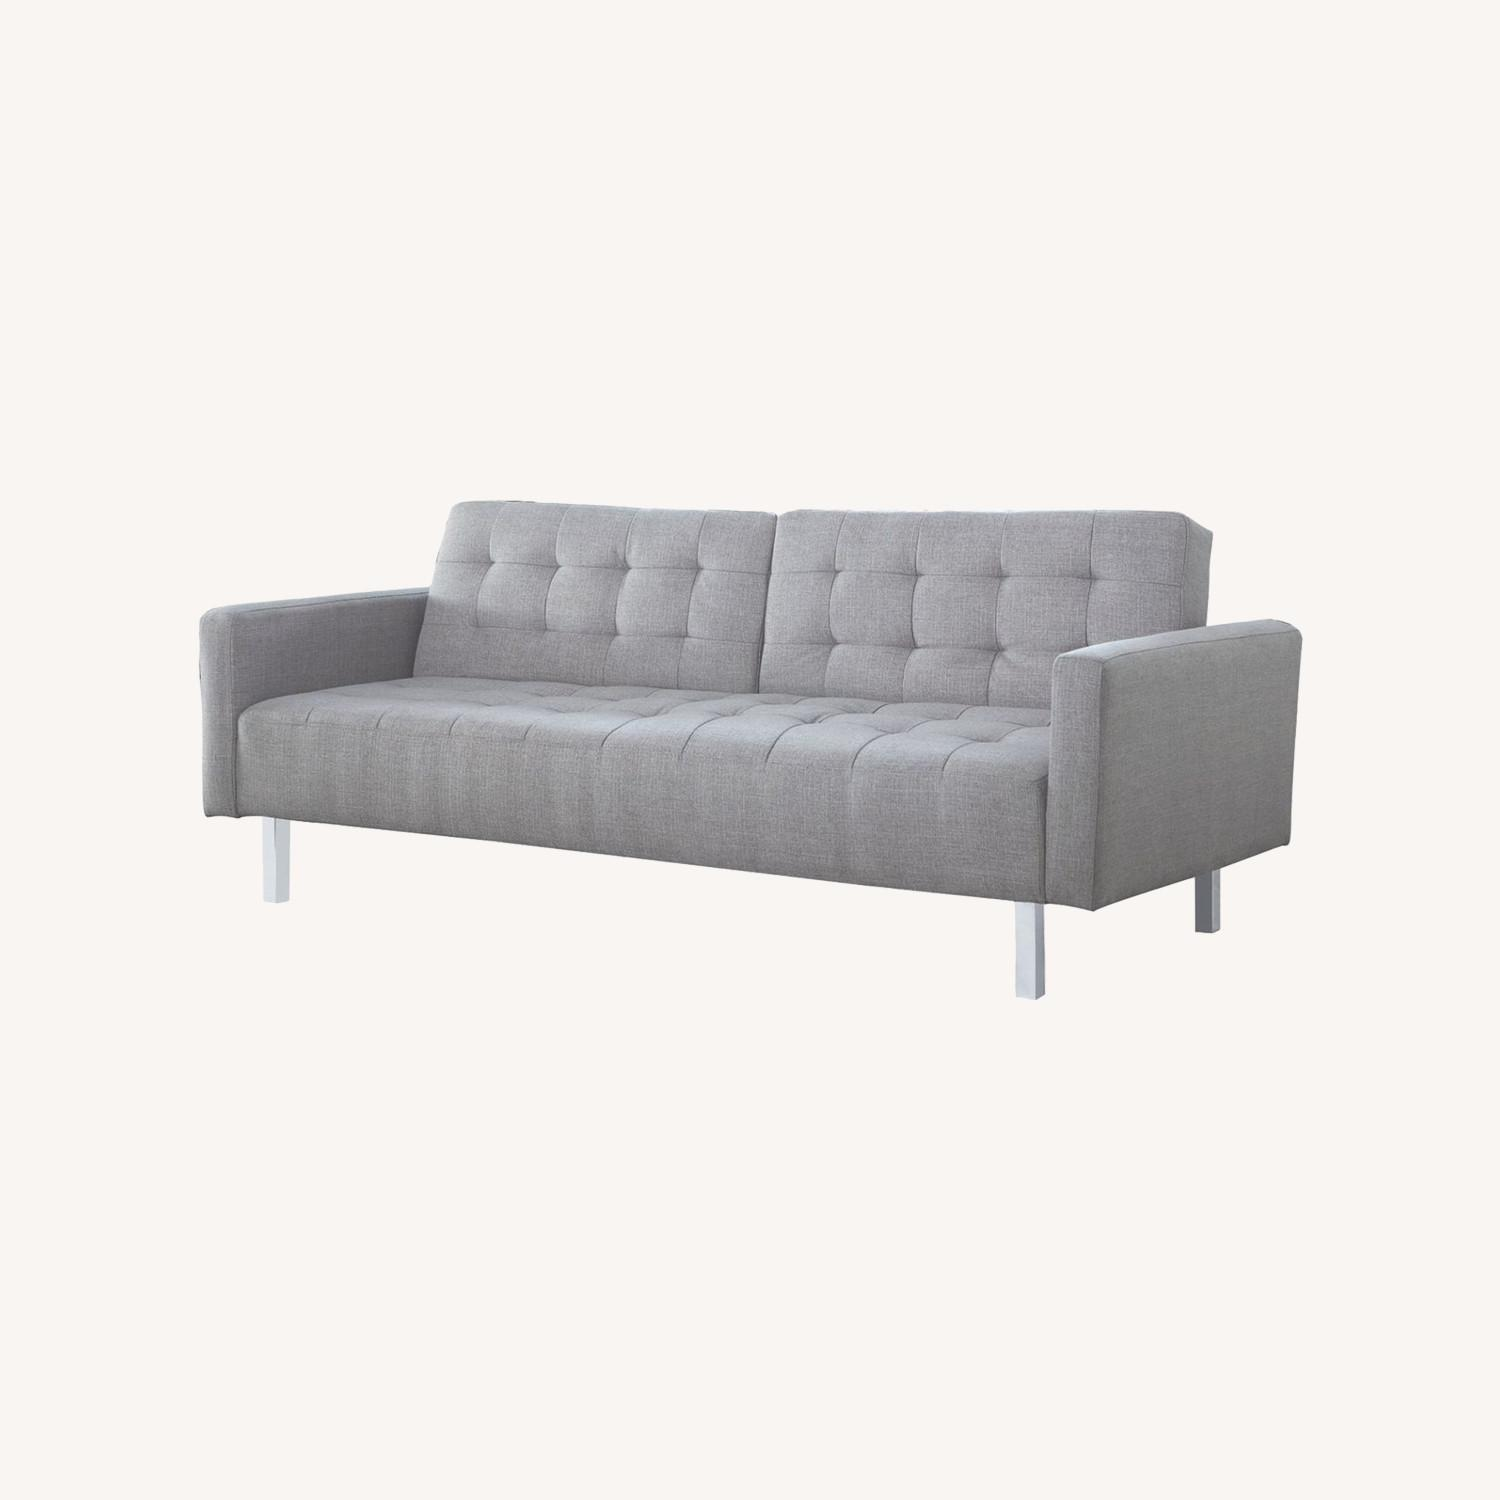 Modern Button Tufted Sofa Bed In Light Grey Fabric - image-4